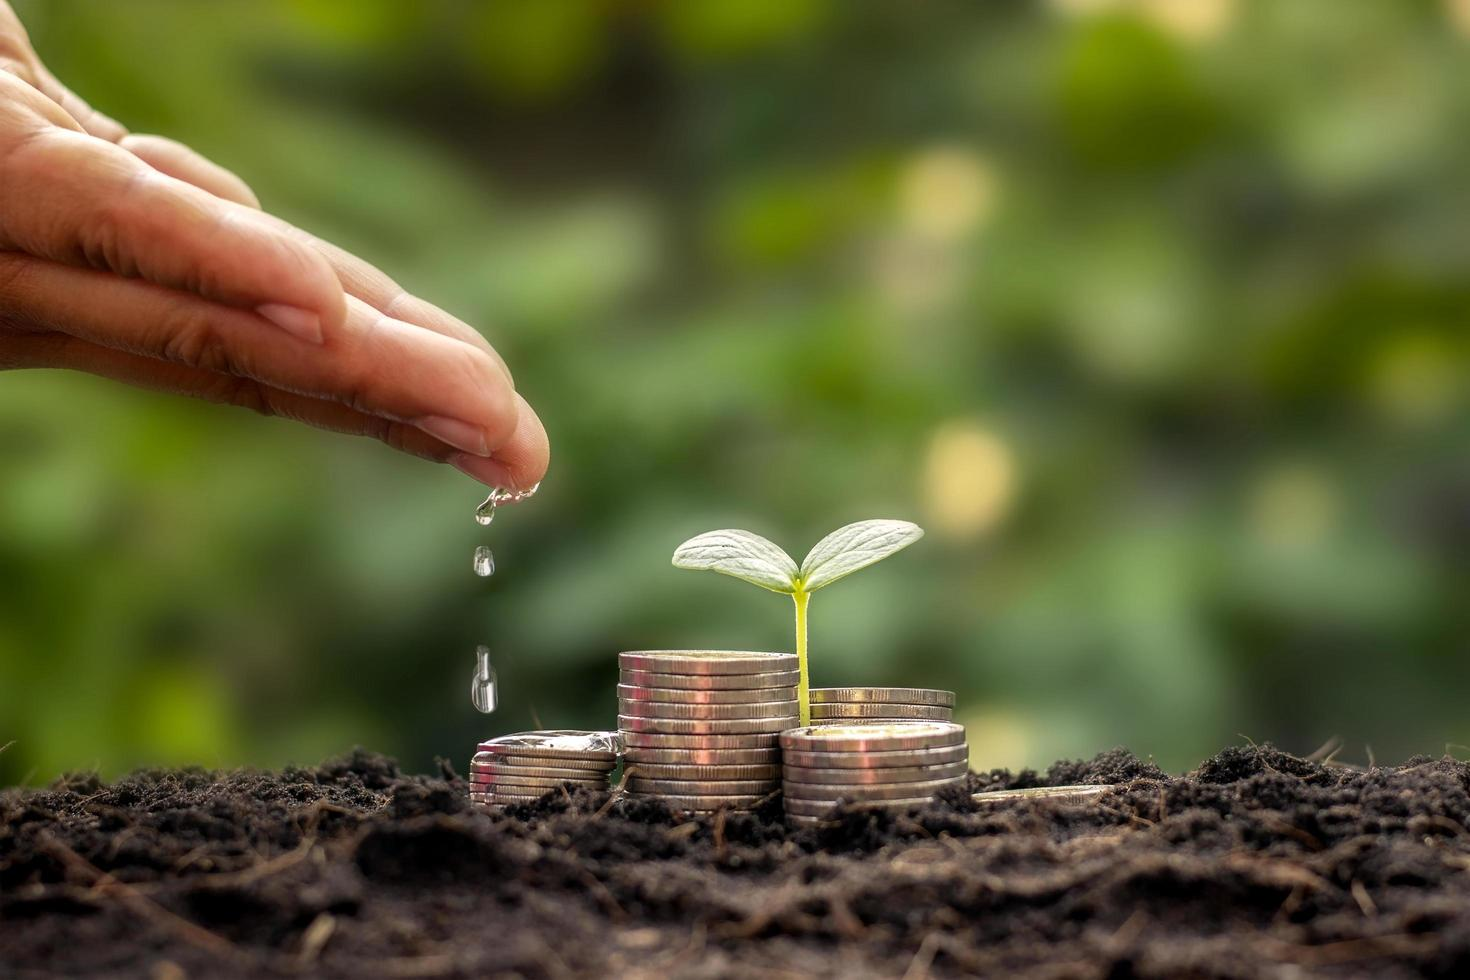 The business man's hand is watering the plants growing on the pile of coins stacked on the ground financial growth and business management ideas. photo